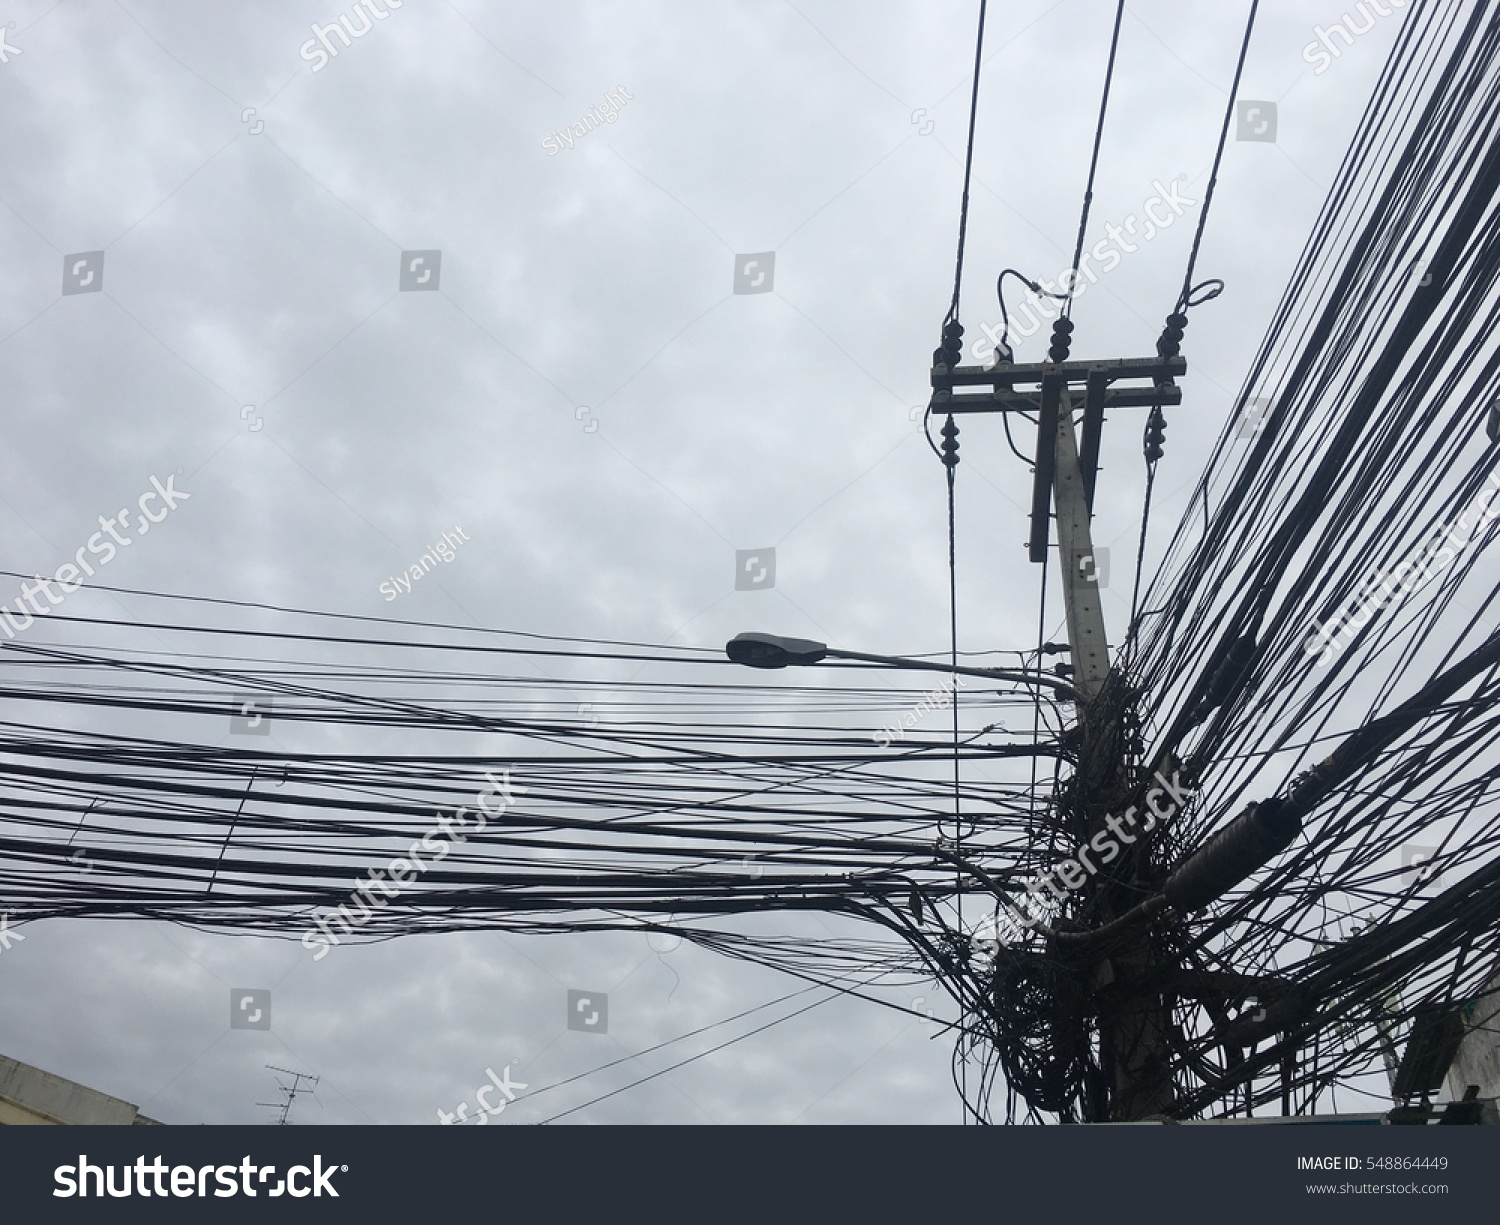 Complicated Arrangement Thailand Electric Wire Stock Photo 548864449 ...